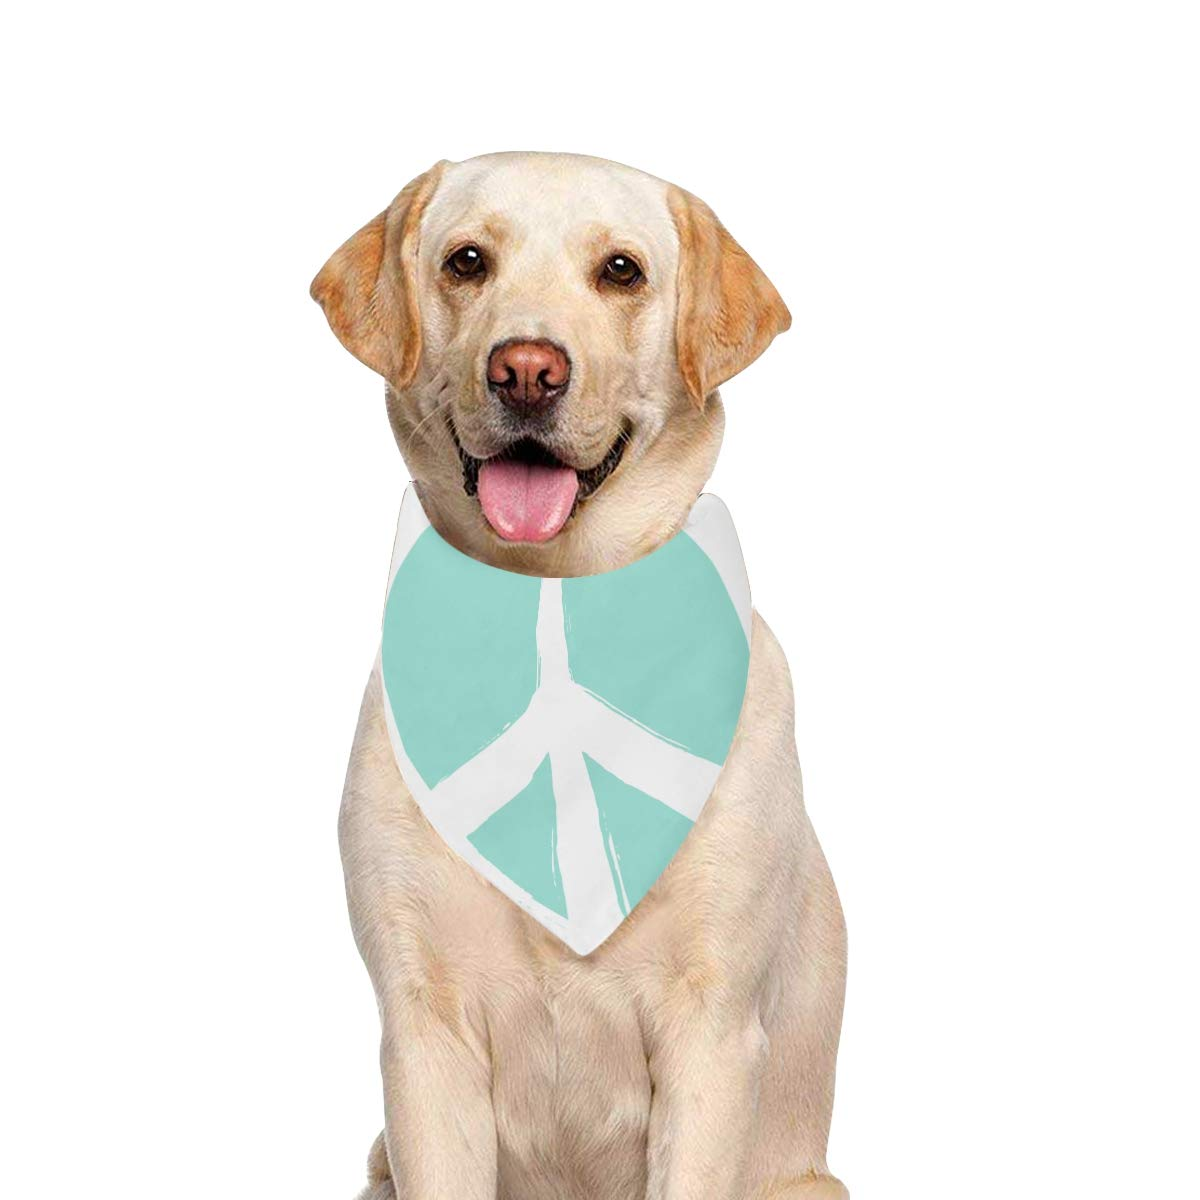 JTMOVING Dog Scarf Isolated Heart Shape Peace Symbol Brush Printing Dog Bandana Triangle Kerchief Bibs Accessories for Large Boy Girl Dogs Cats Pets Birthday Party Gift